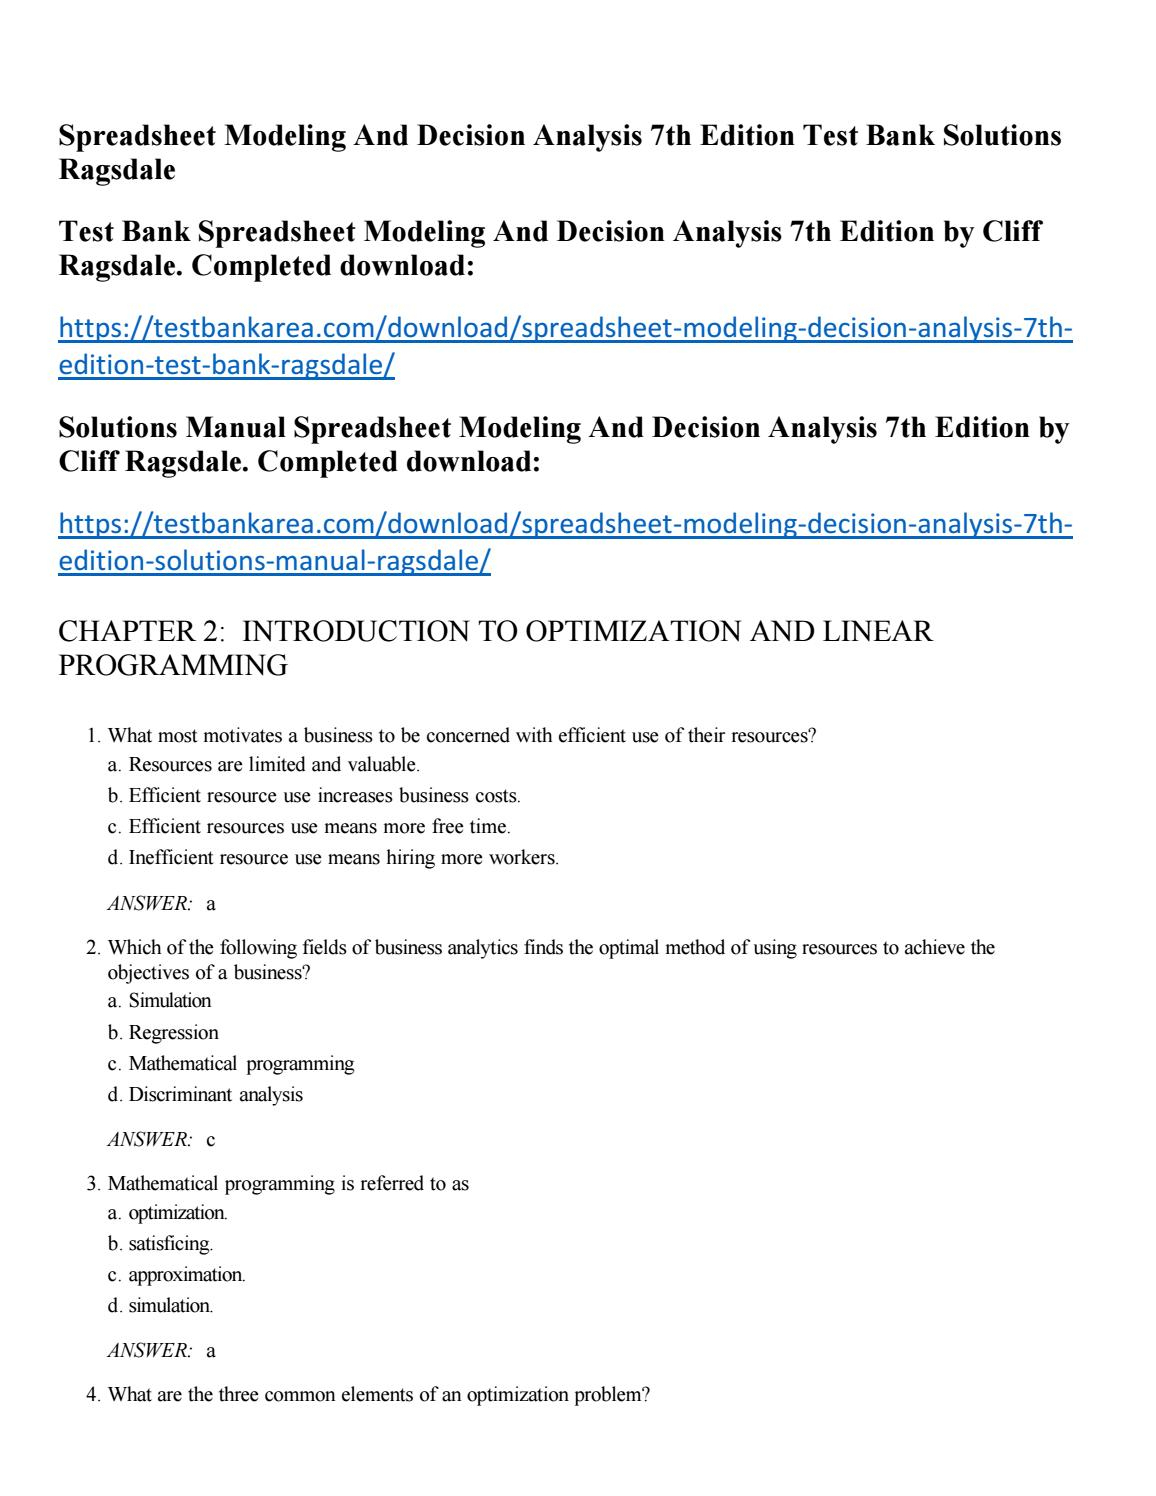 Ragsdale Spreadsheet Modeling With Regard To Spreadsheet Modeling And Decision Analysis 7Th Edition Test Bank Ragsdale Spreadsheet Modeling Printable Spreadshee Printable Spreadshee ragsdale spreadsheet modeling and decision analysis pdf